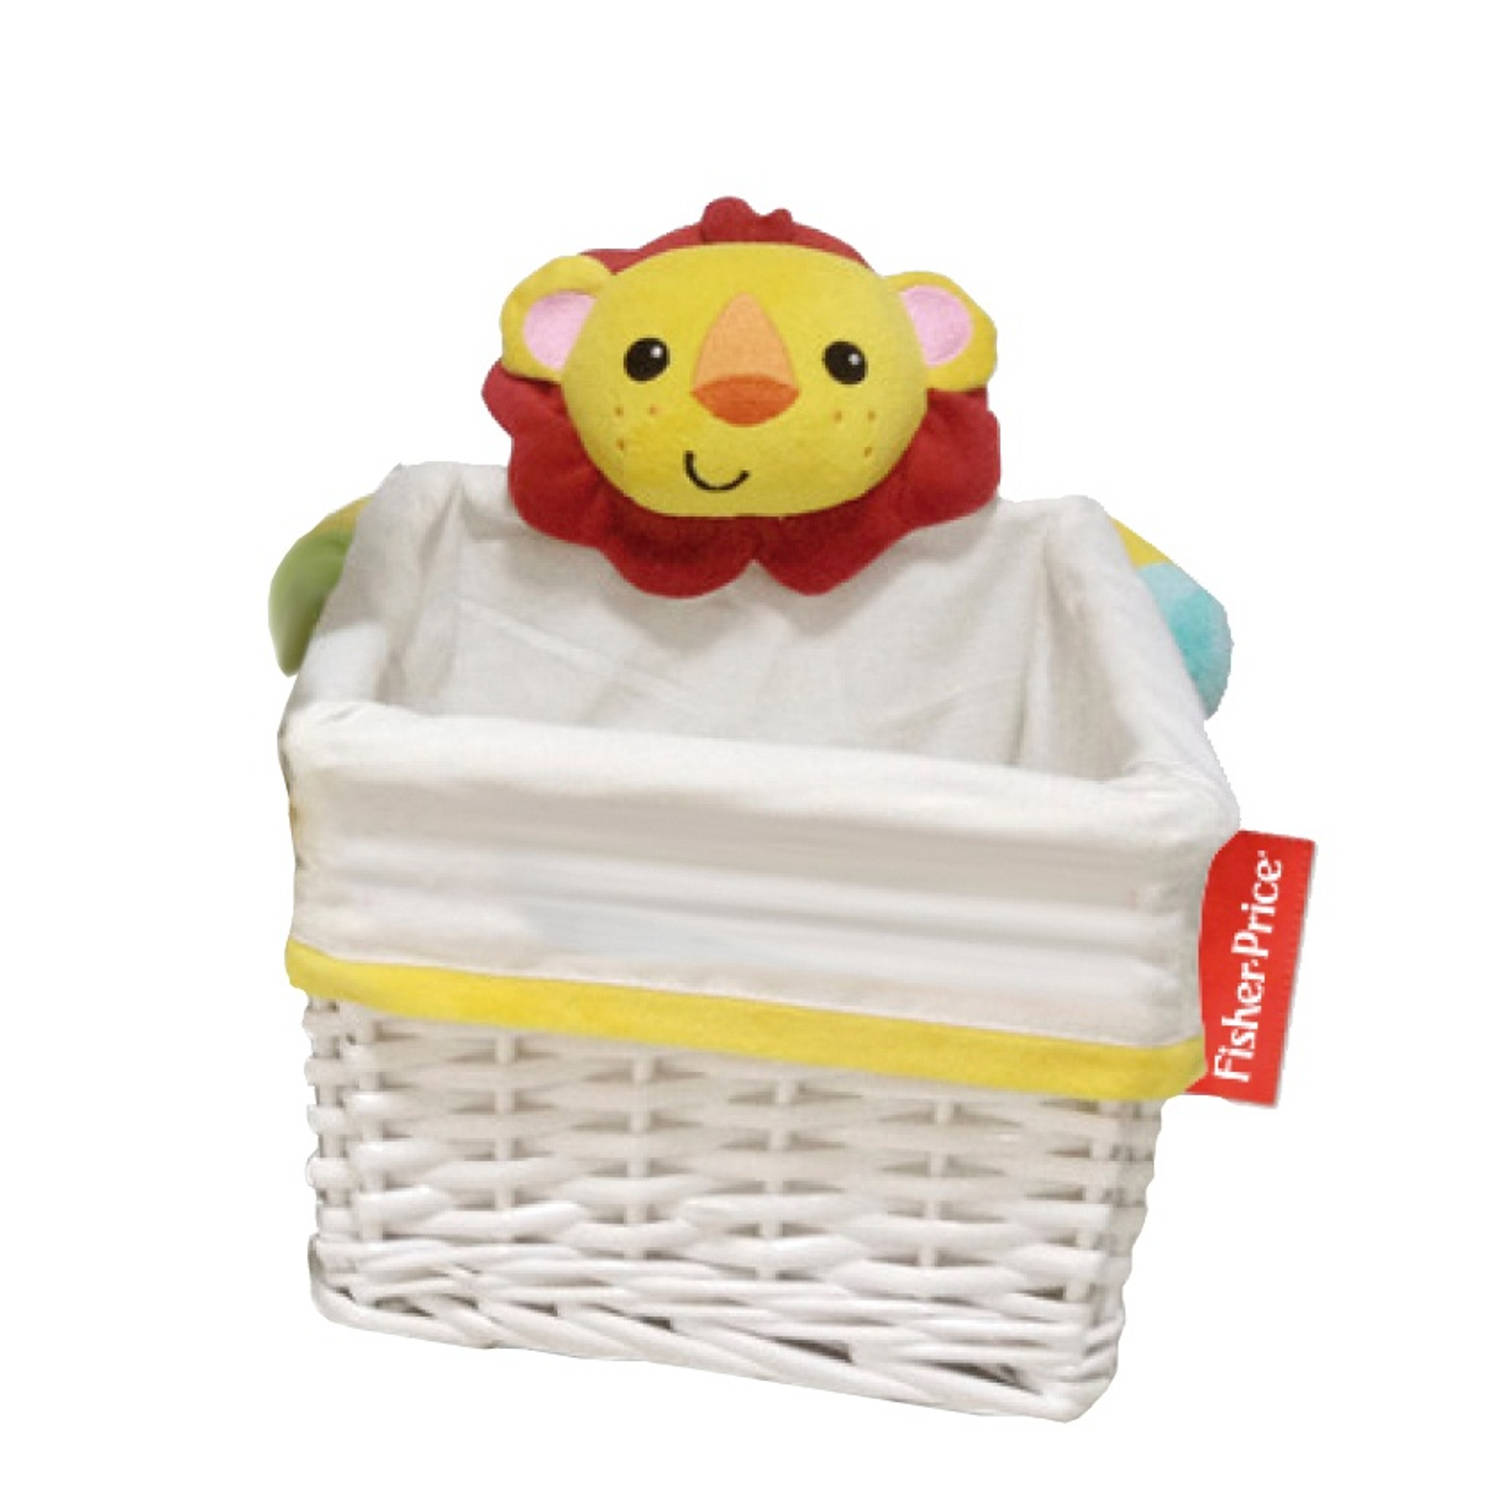 Fisher-Price opbergbox leeuw wit 9,8 liter